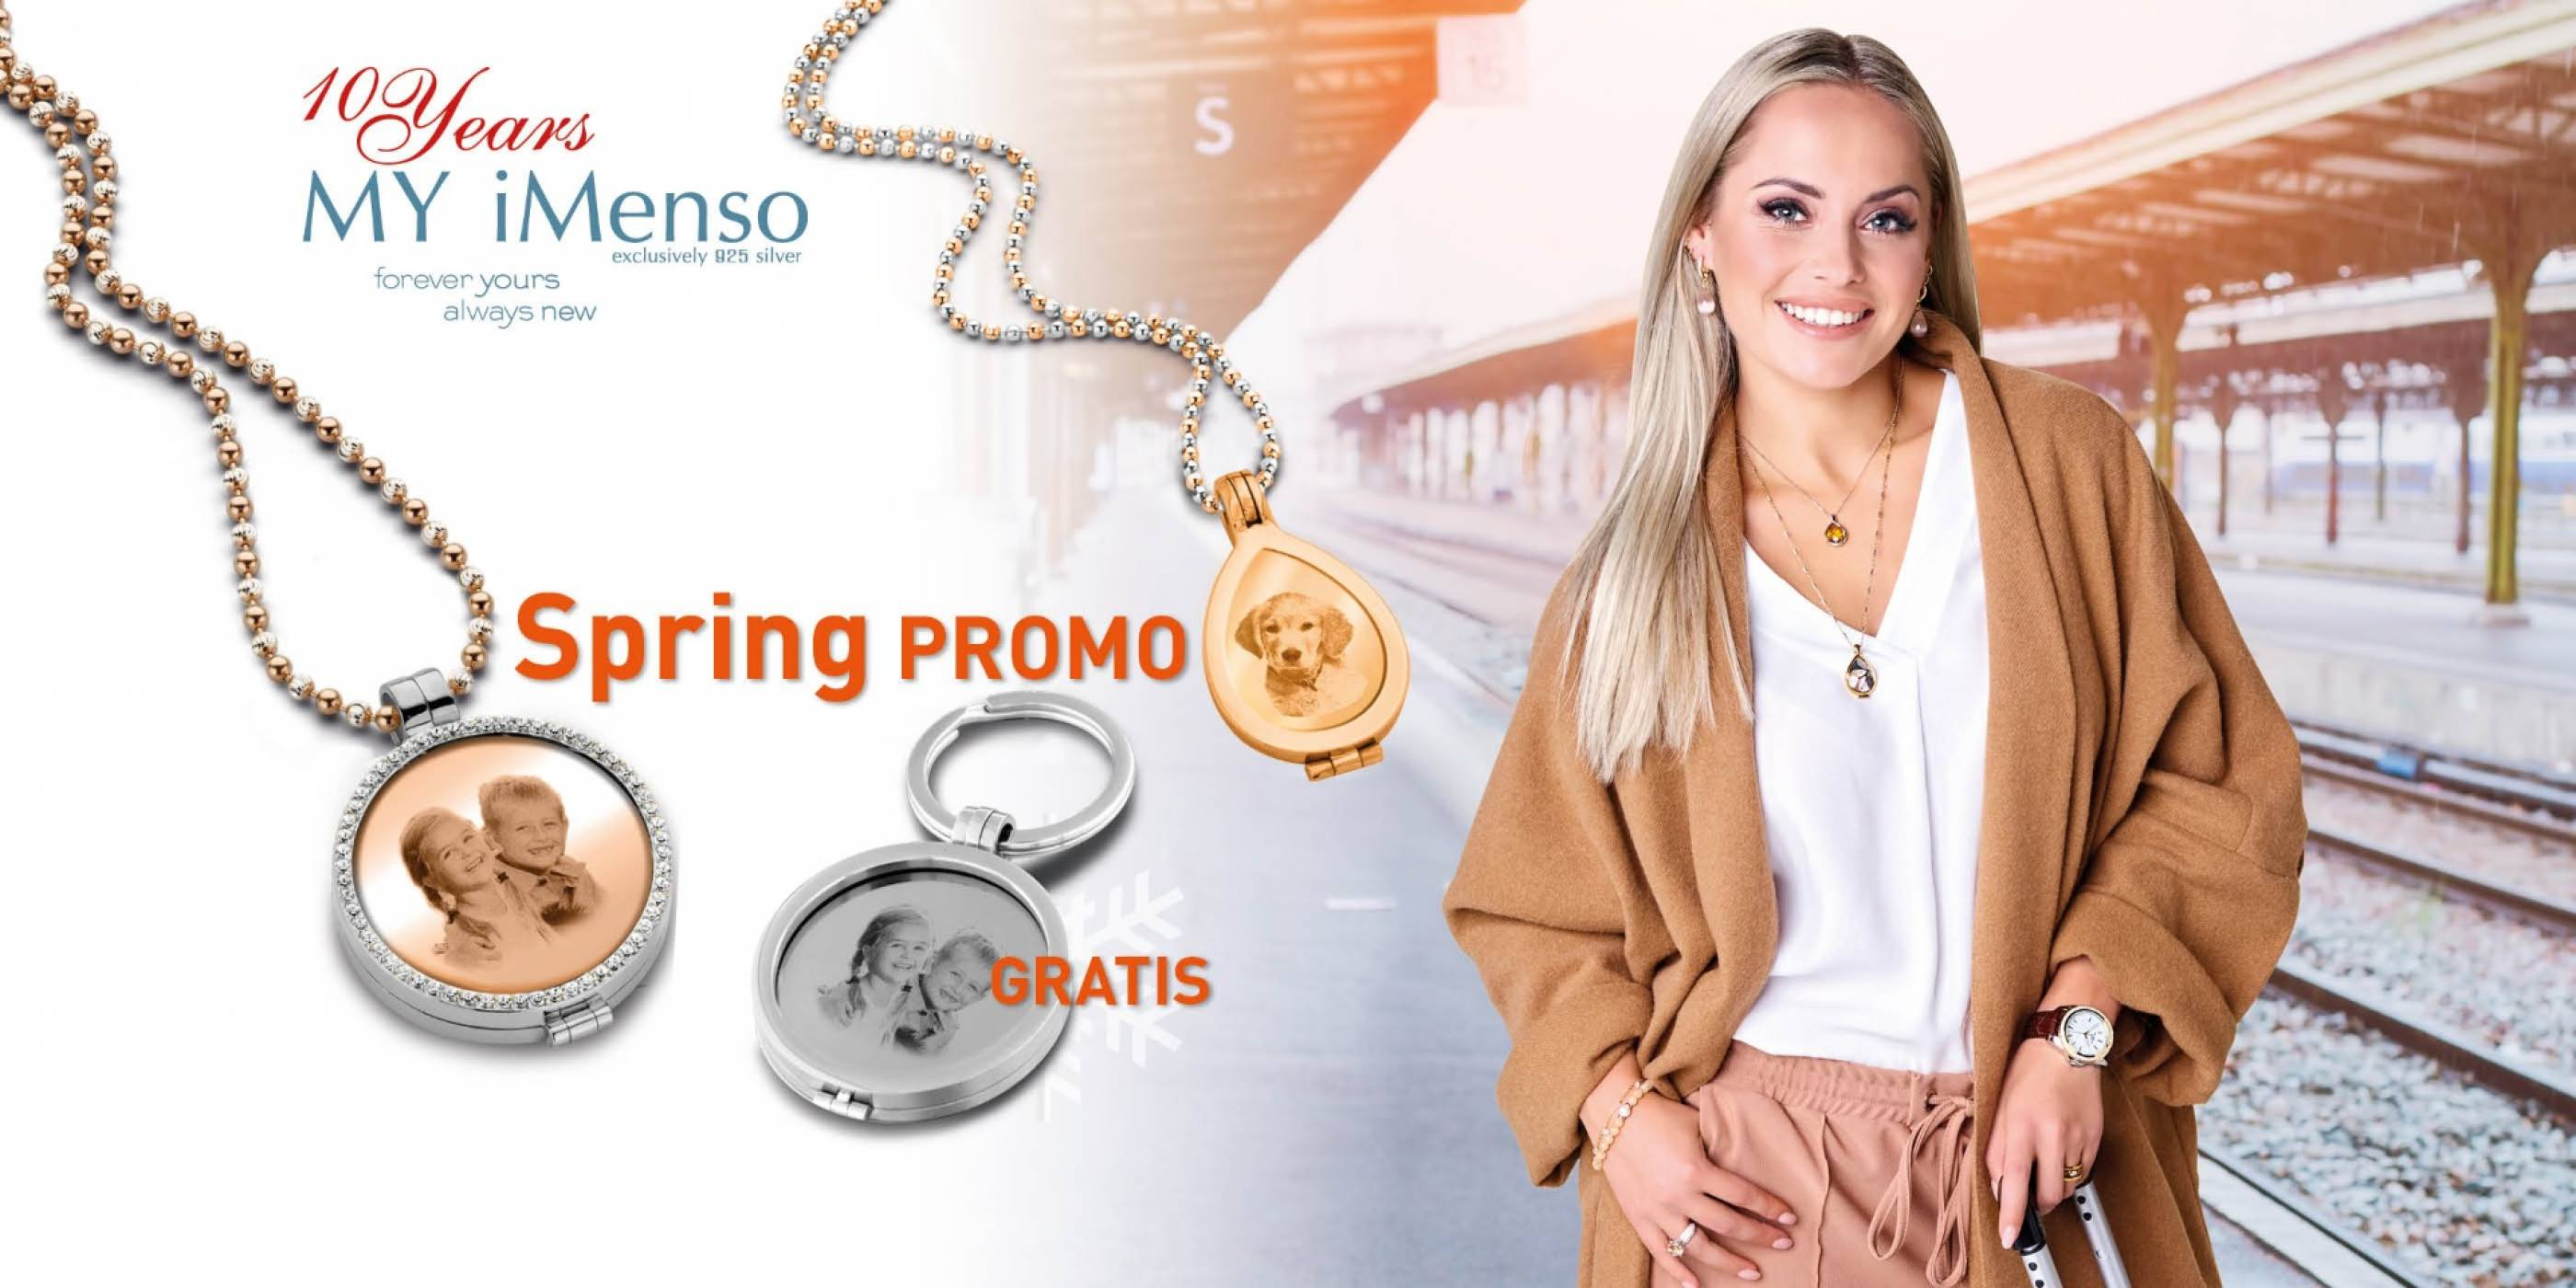 https://myimenso.eu/nl/my-hq/insignia/jiving.html